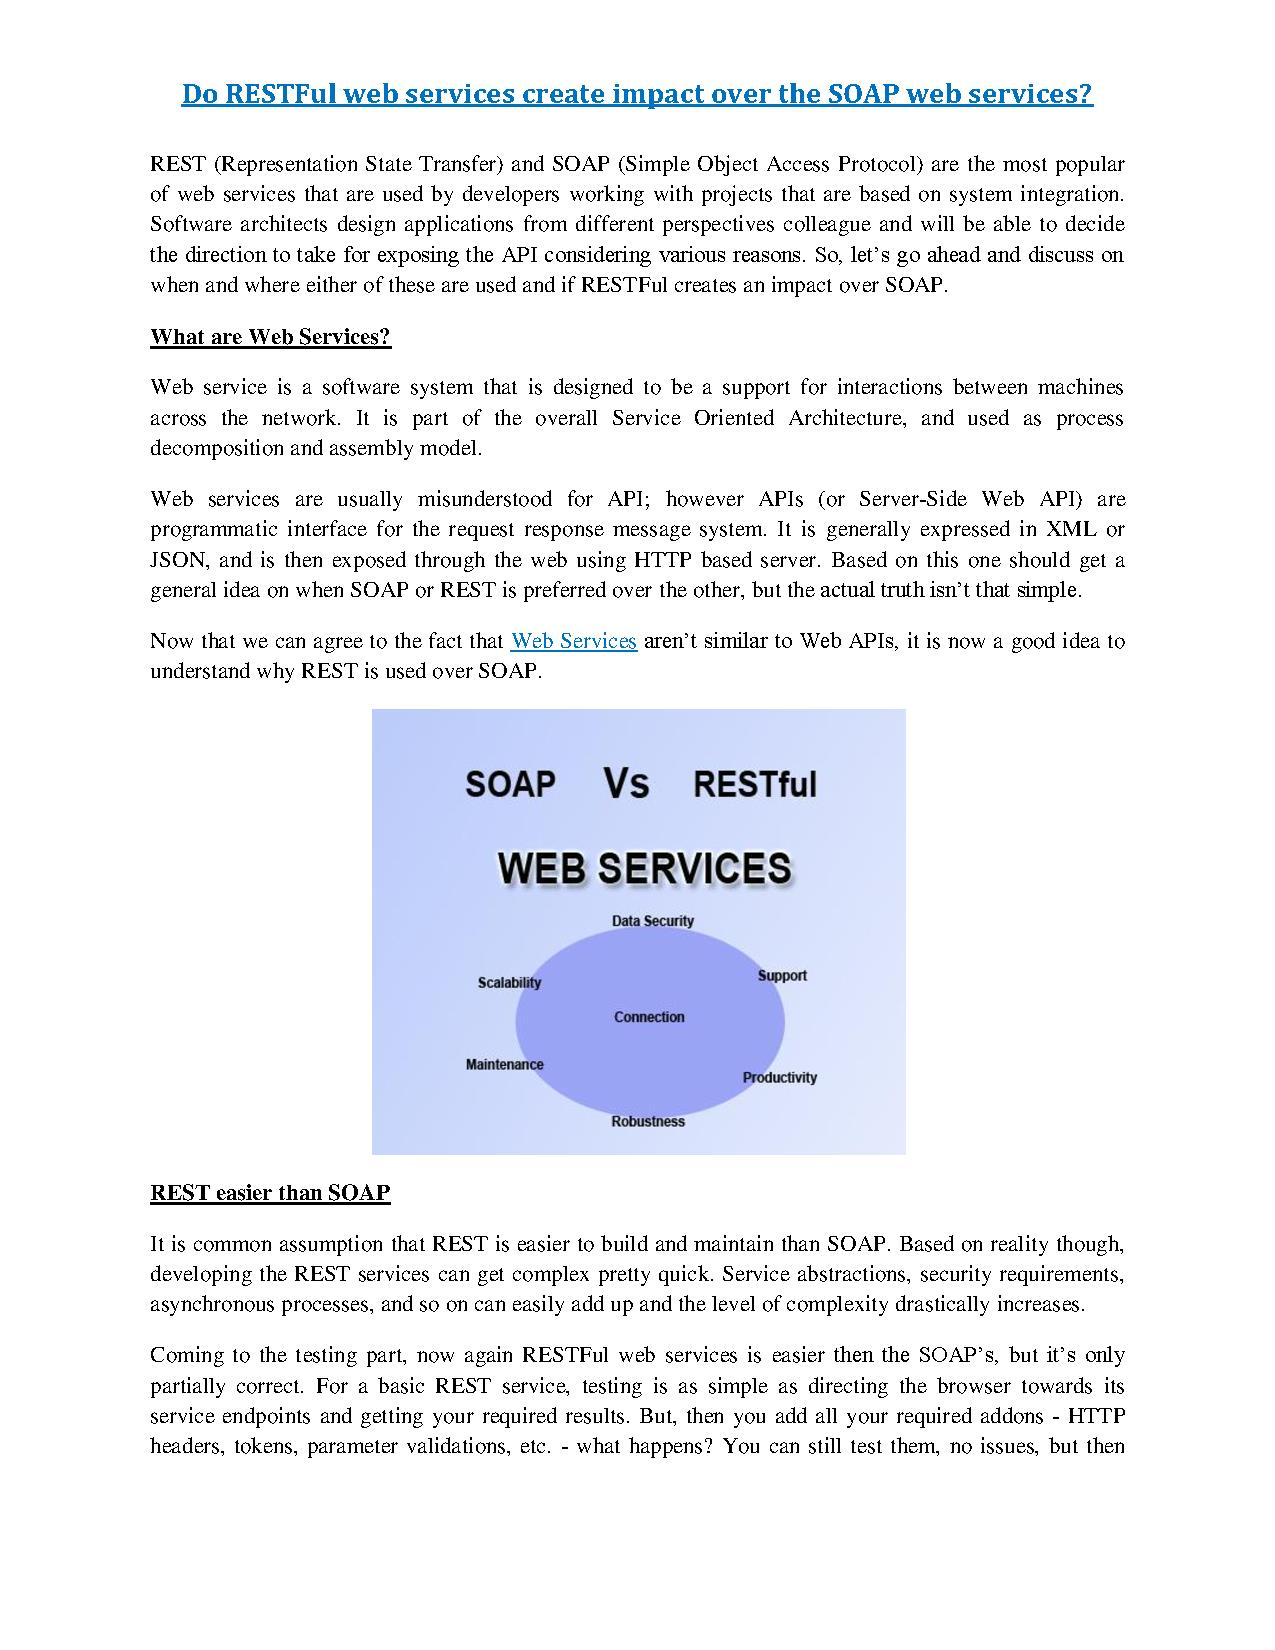 do restful web services create impact over the soap web services pdf